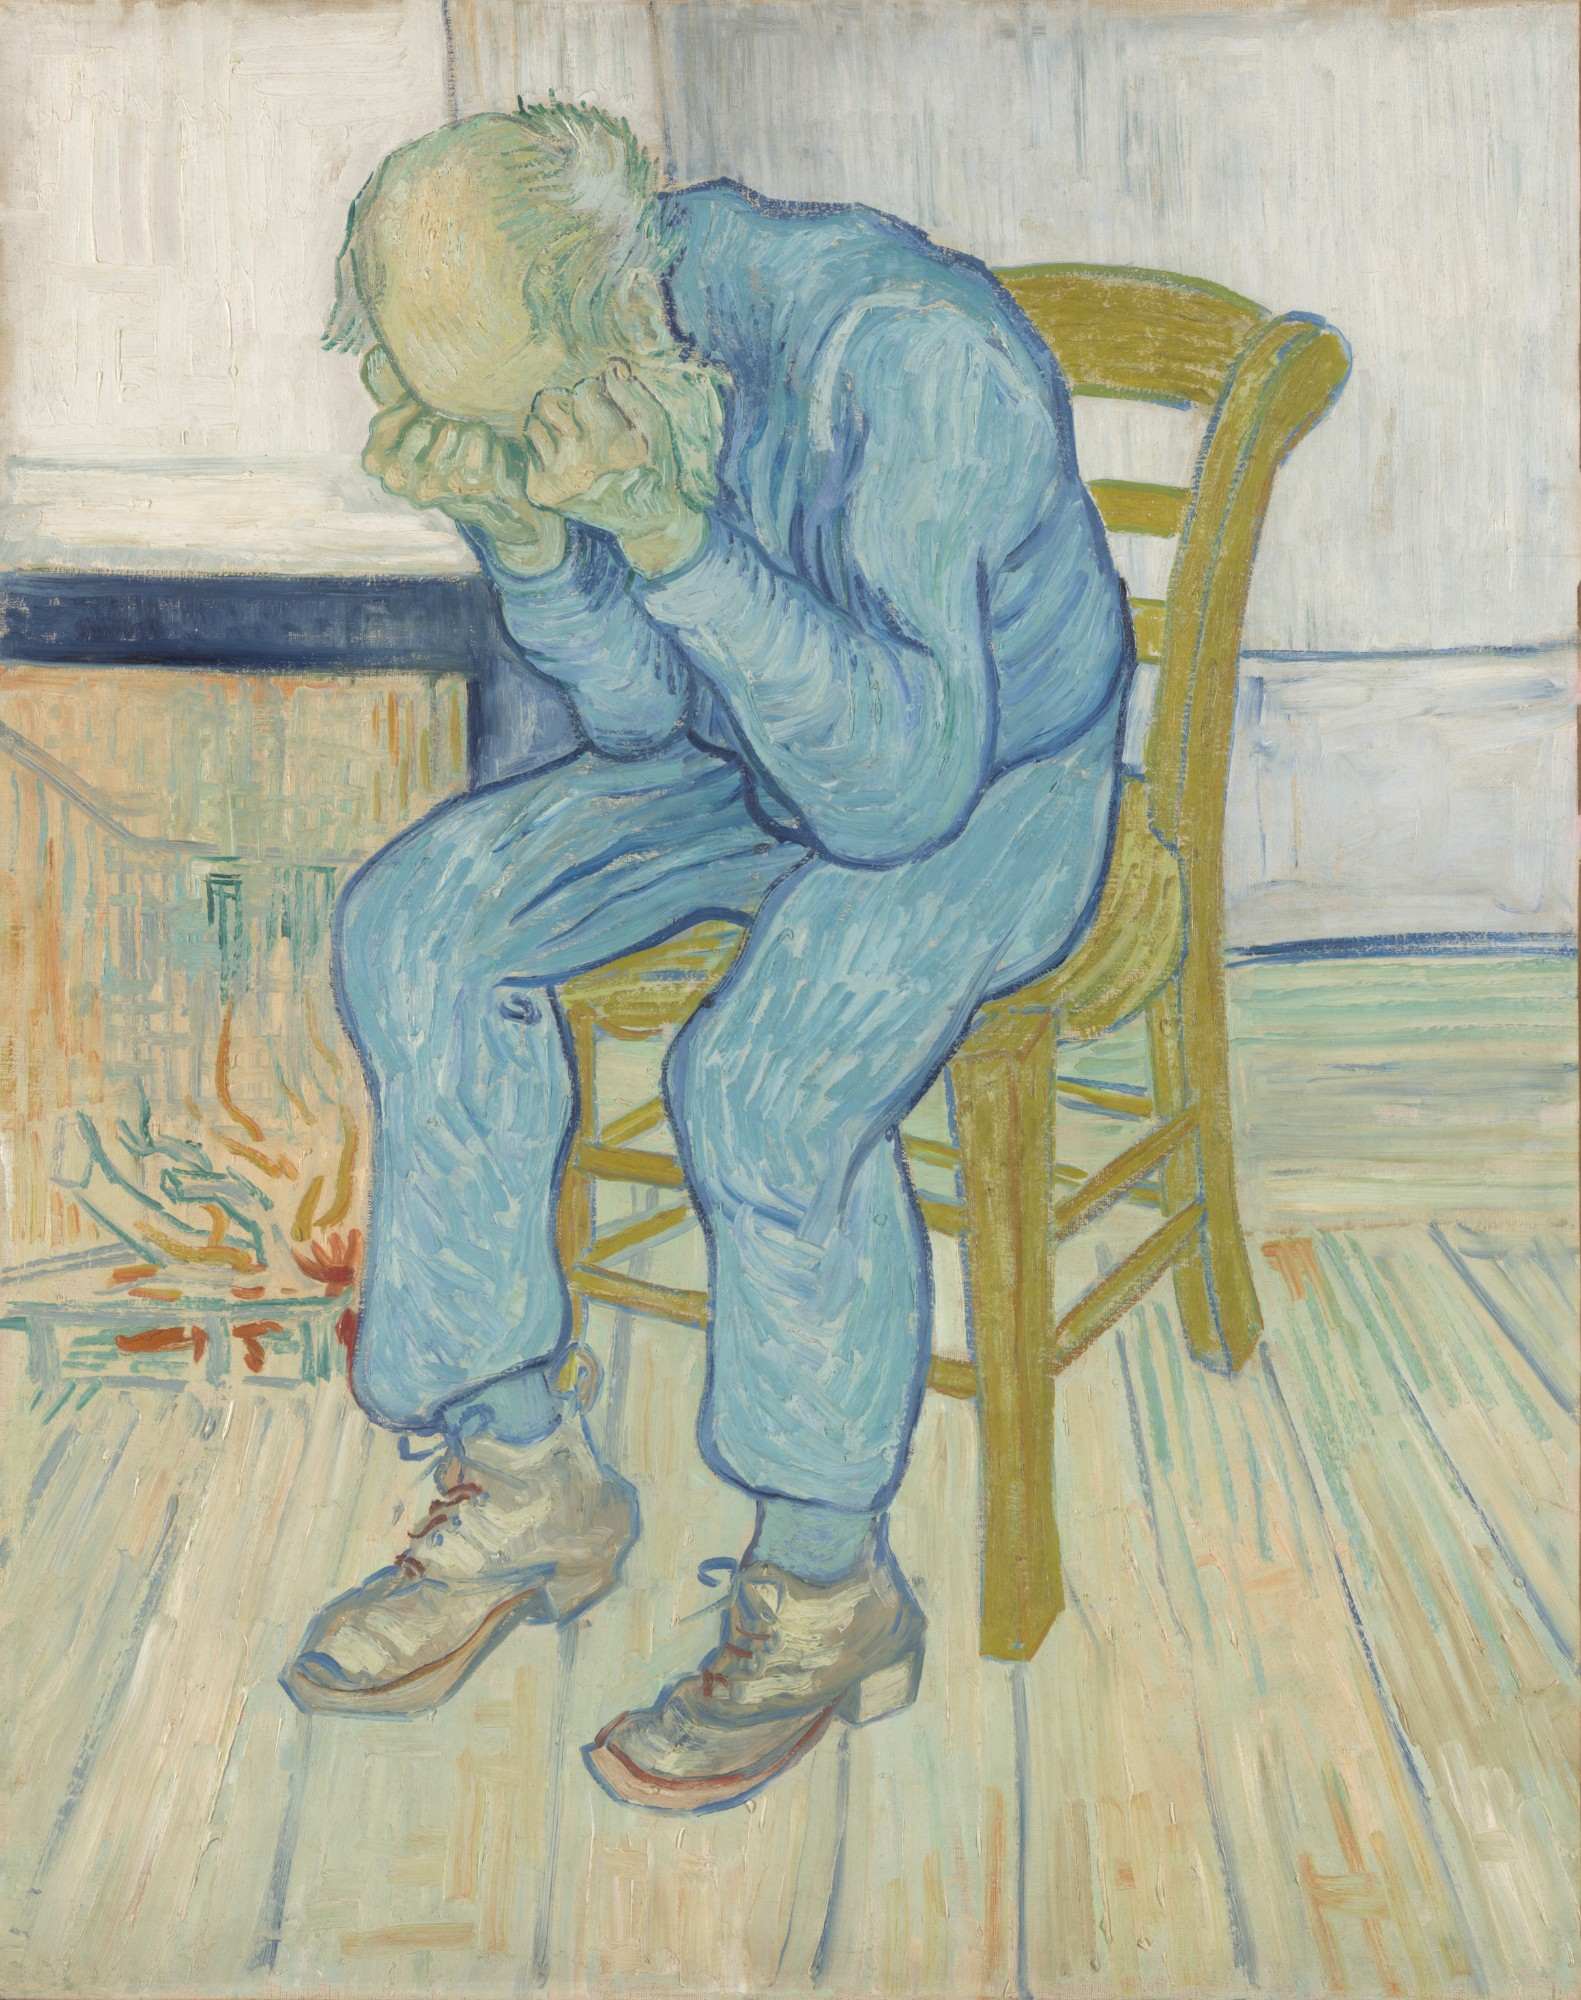 Vincent van Gogh – At Eternity's Gate, 1890. Collection Kröller-Müller Museum, Otterlo